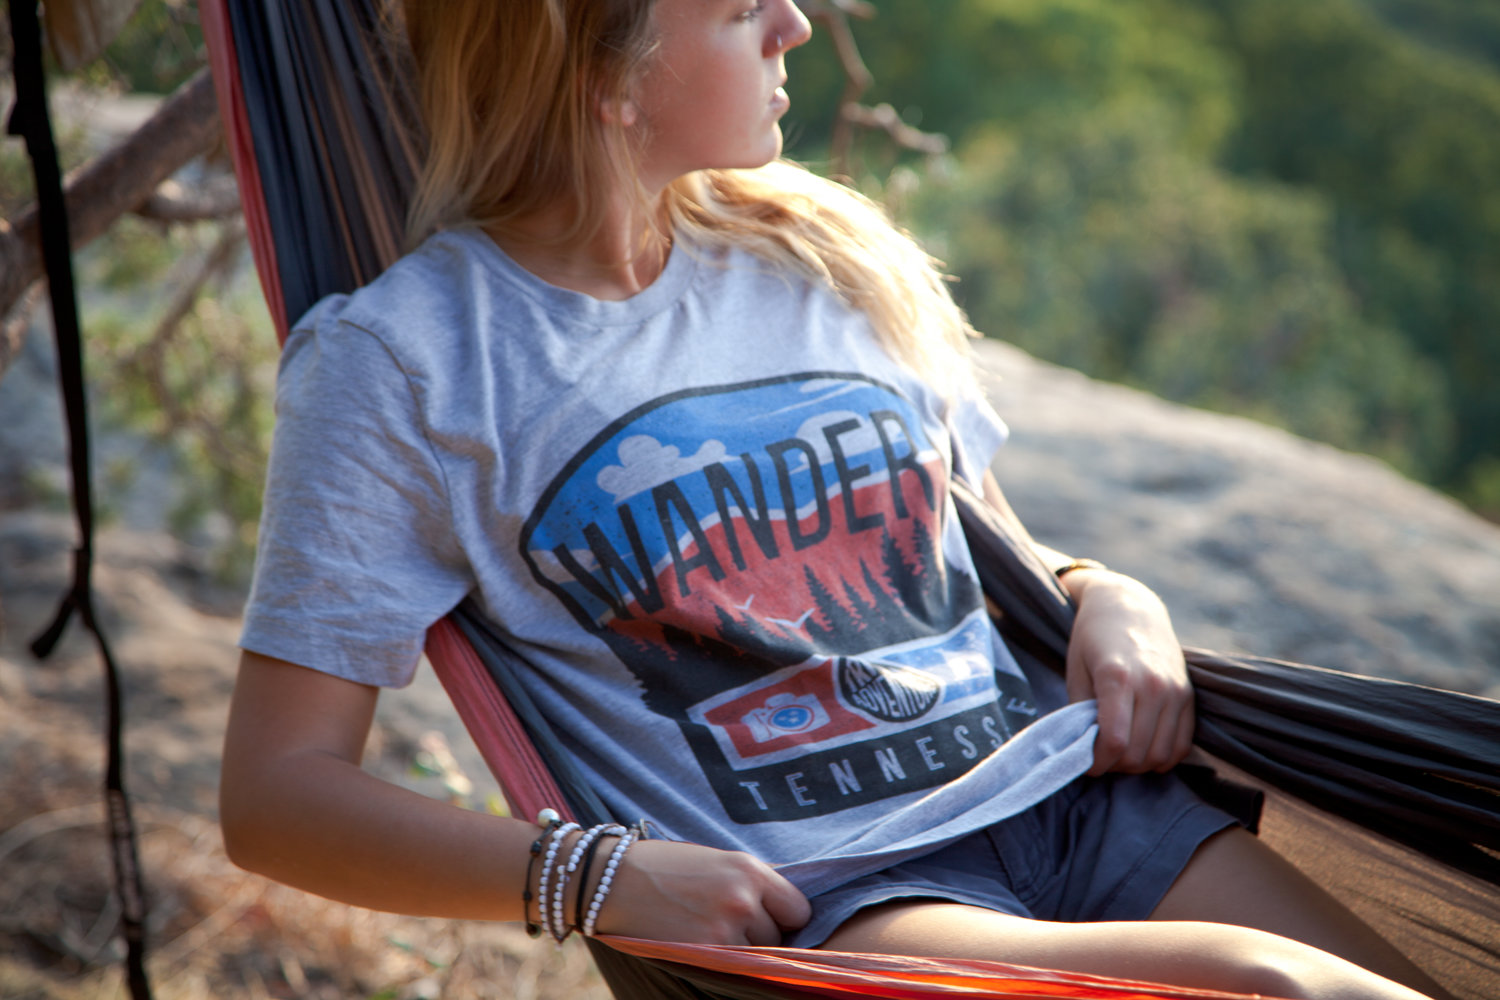 Brand Ambassadors Tristar Adventures T Shirt National Geographic Adventure Wander Tennessee Instagram Tshirt Outdoors